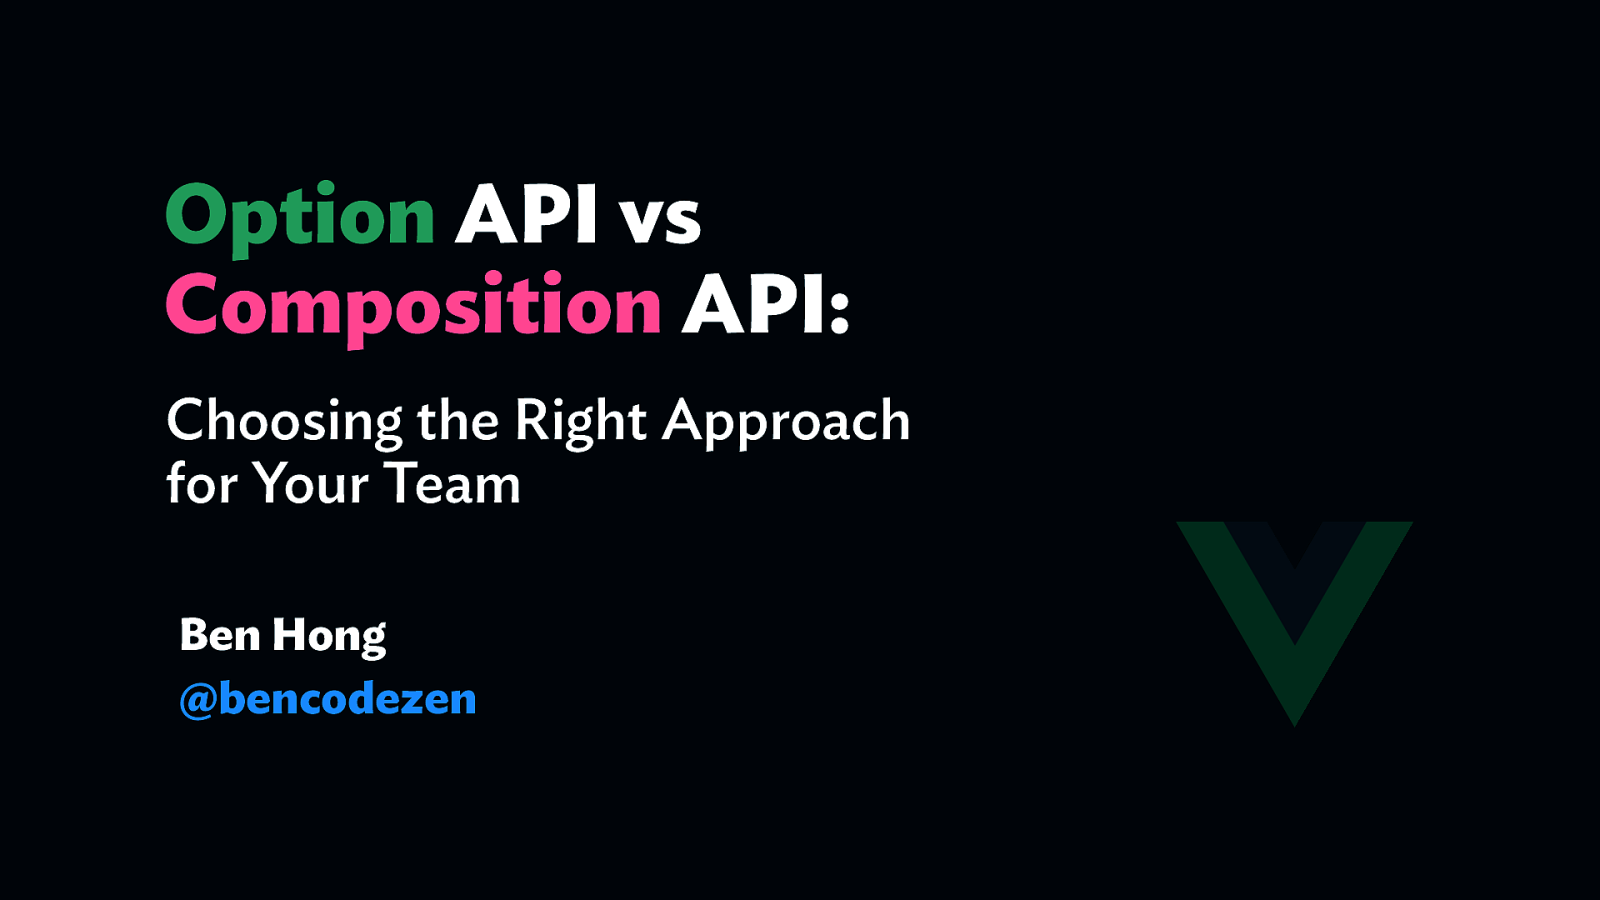 Options API vs Composition API: Choosing the Right Approach for Your Team